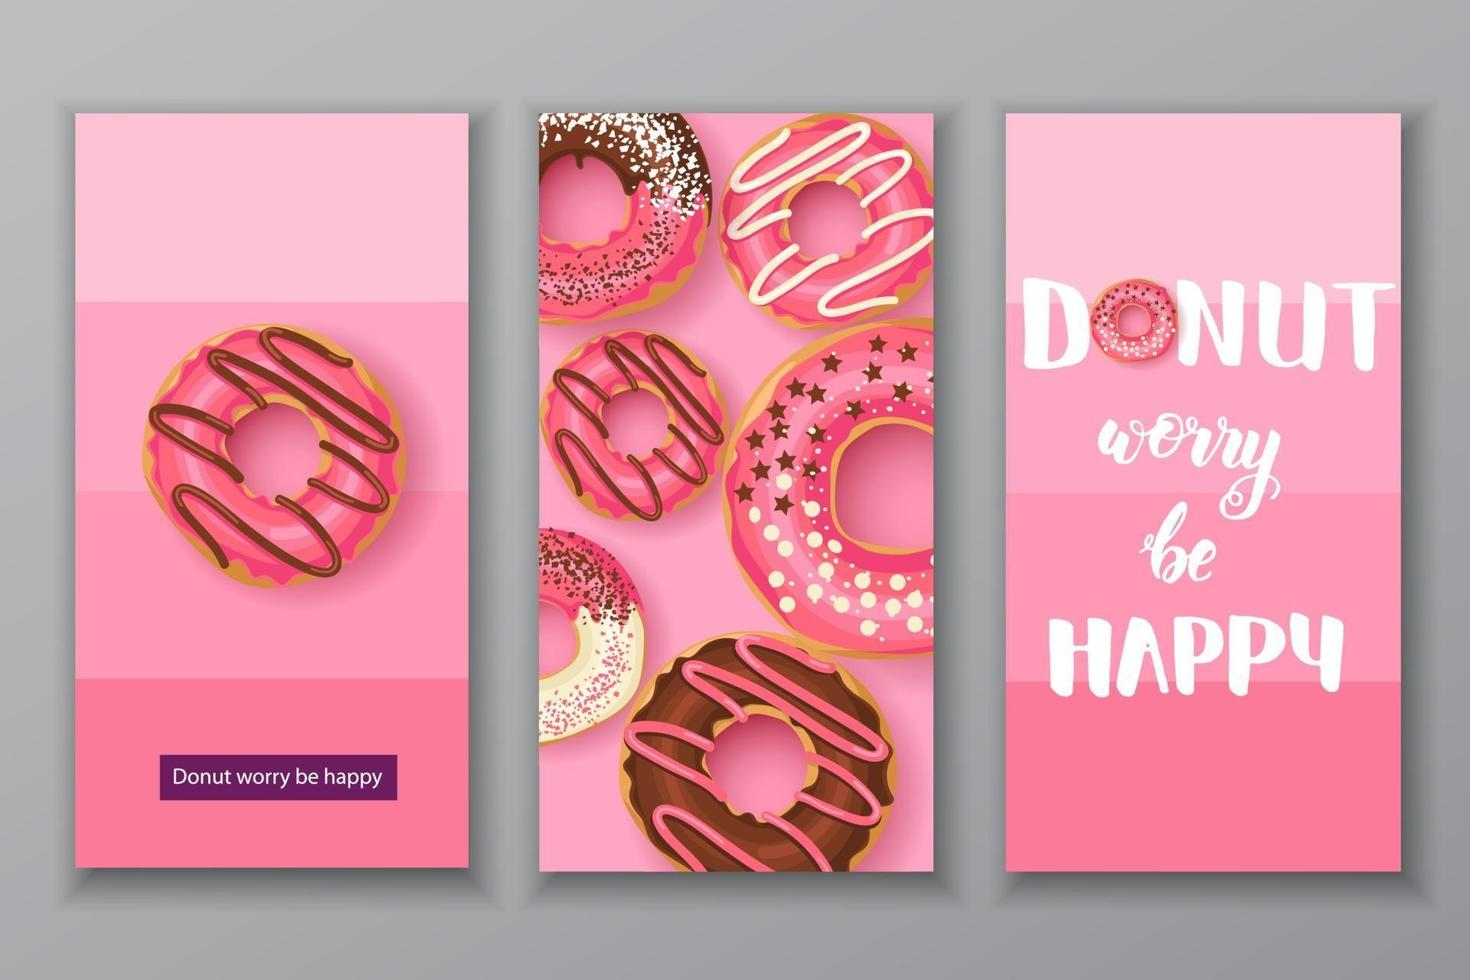 Sweet banners with Hand made lettering -Donut worry be happy with pink glazed donuts with chocolate and powder. Food design. Can be used for layout, advertising and web design. vector